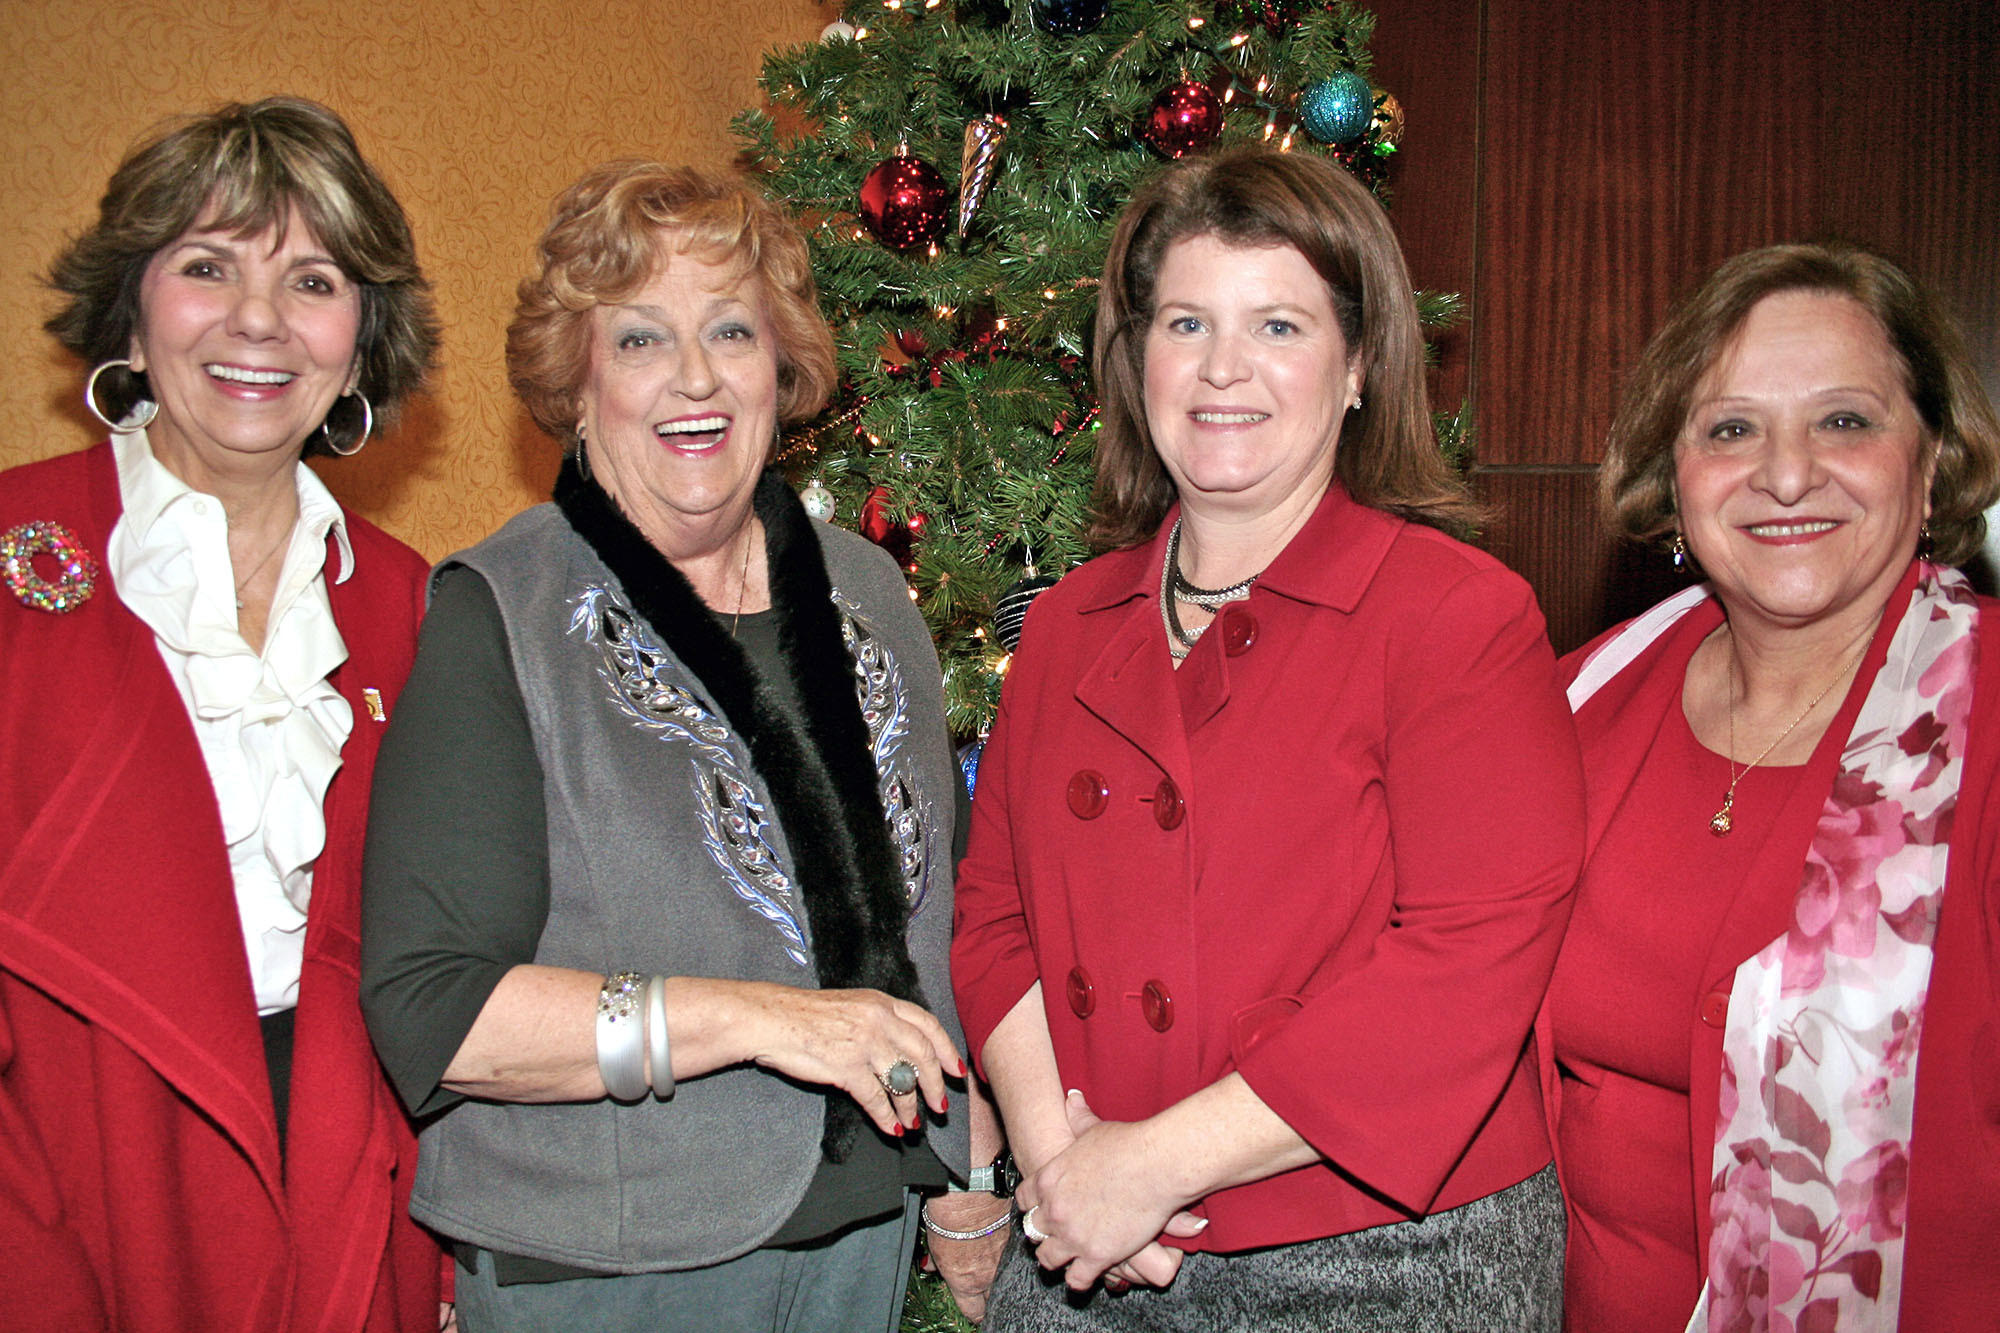 Glendale Soroptimists grant recipients included Glendale Commission on the Status of Women Commissioners, from left, Paula Devine, Lynda Burns, Denise Miller (Chairwoman) and Seda Khojayan.